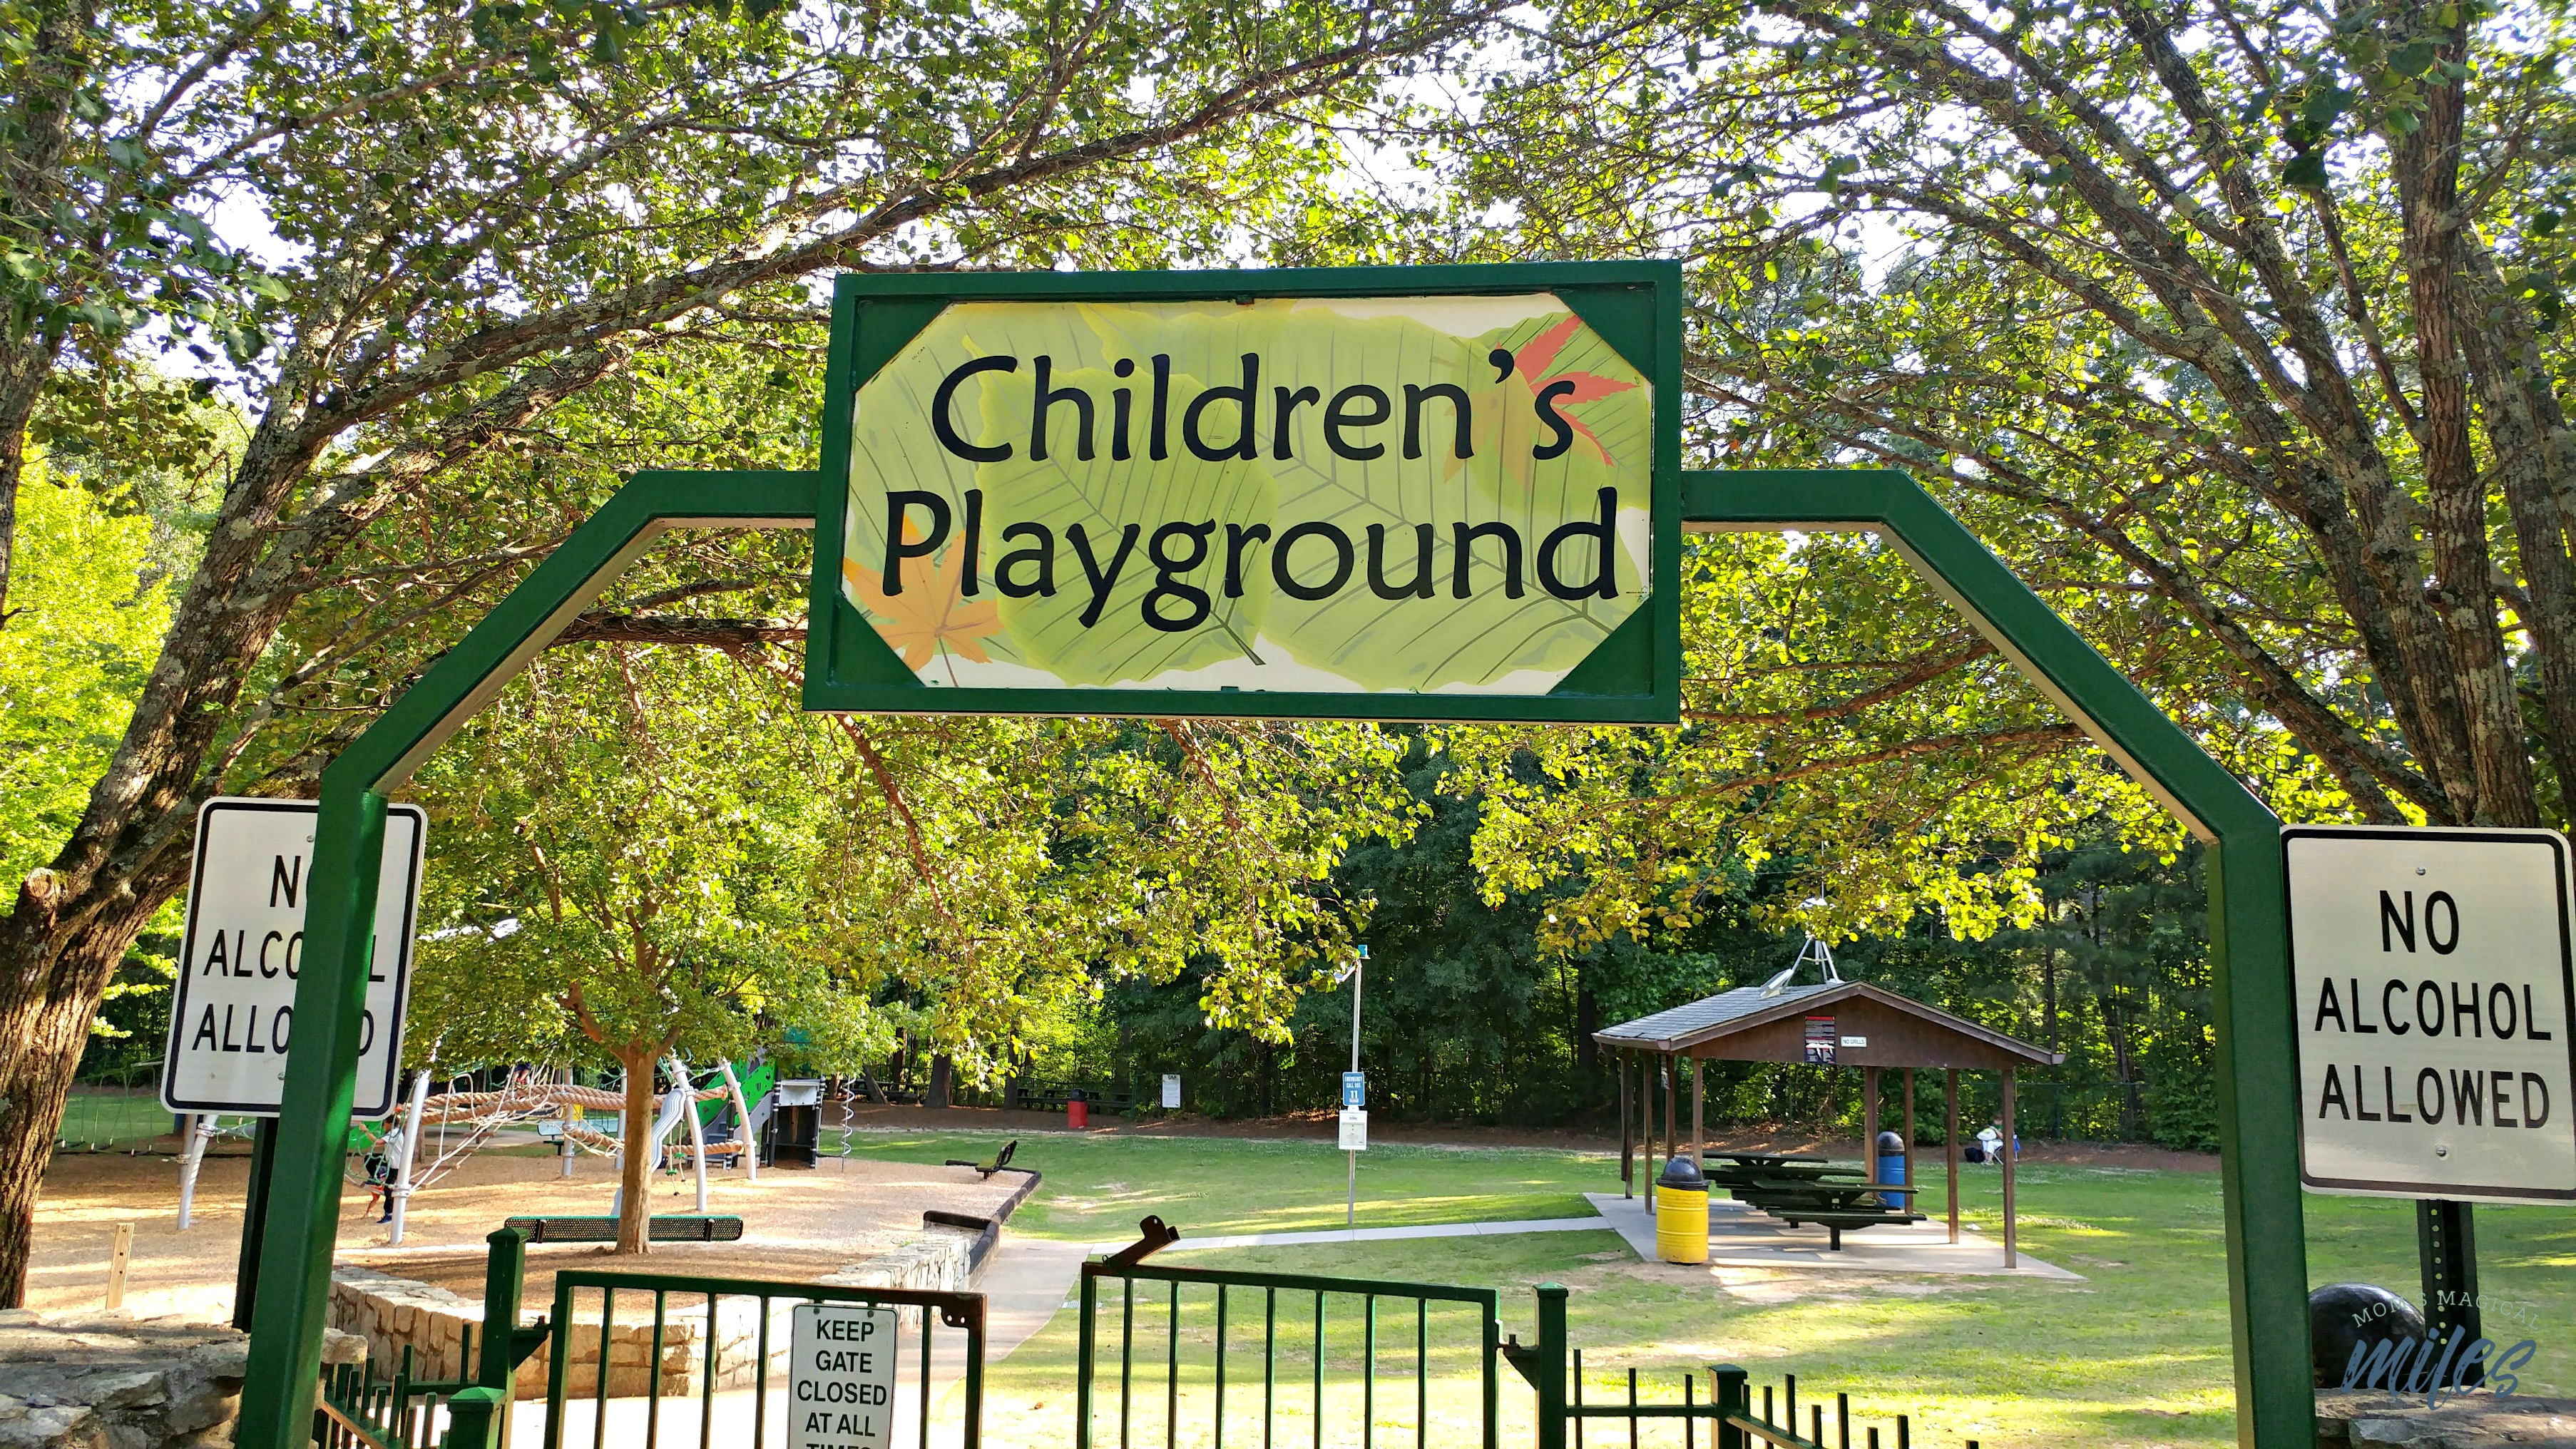 The Children's Playground at Stone Mountain Park is an oasis of old-fashioned fun!